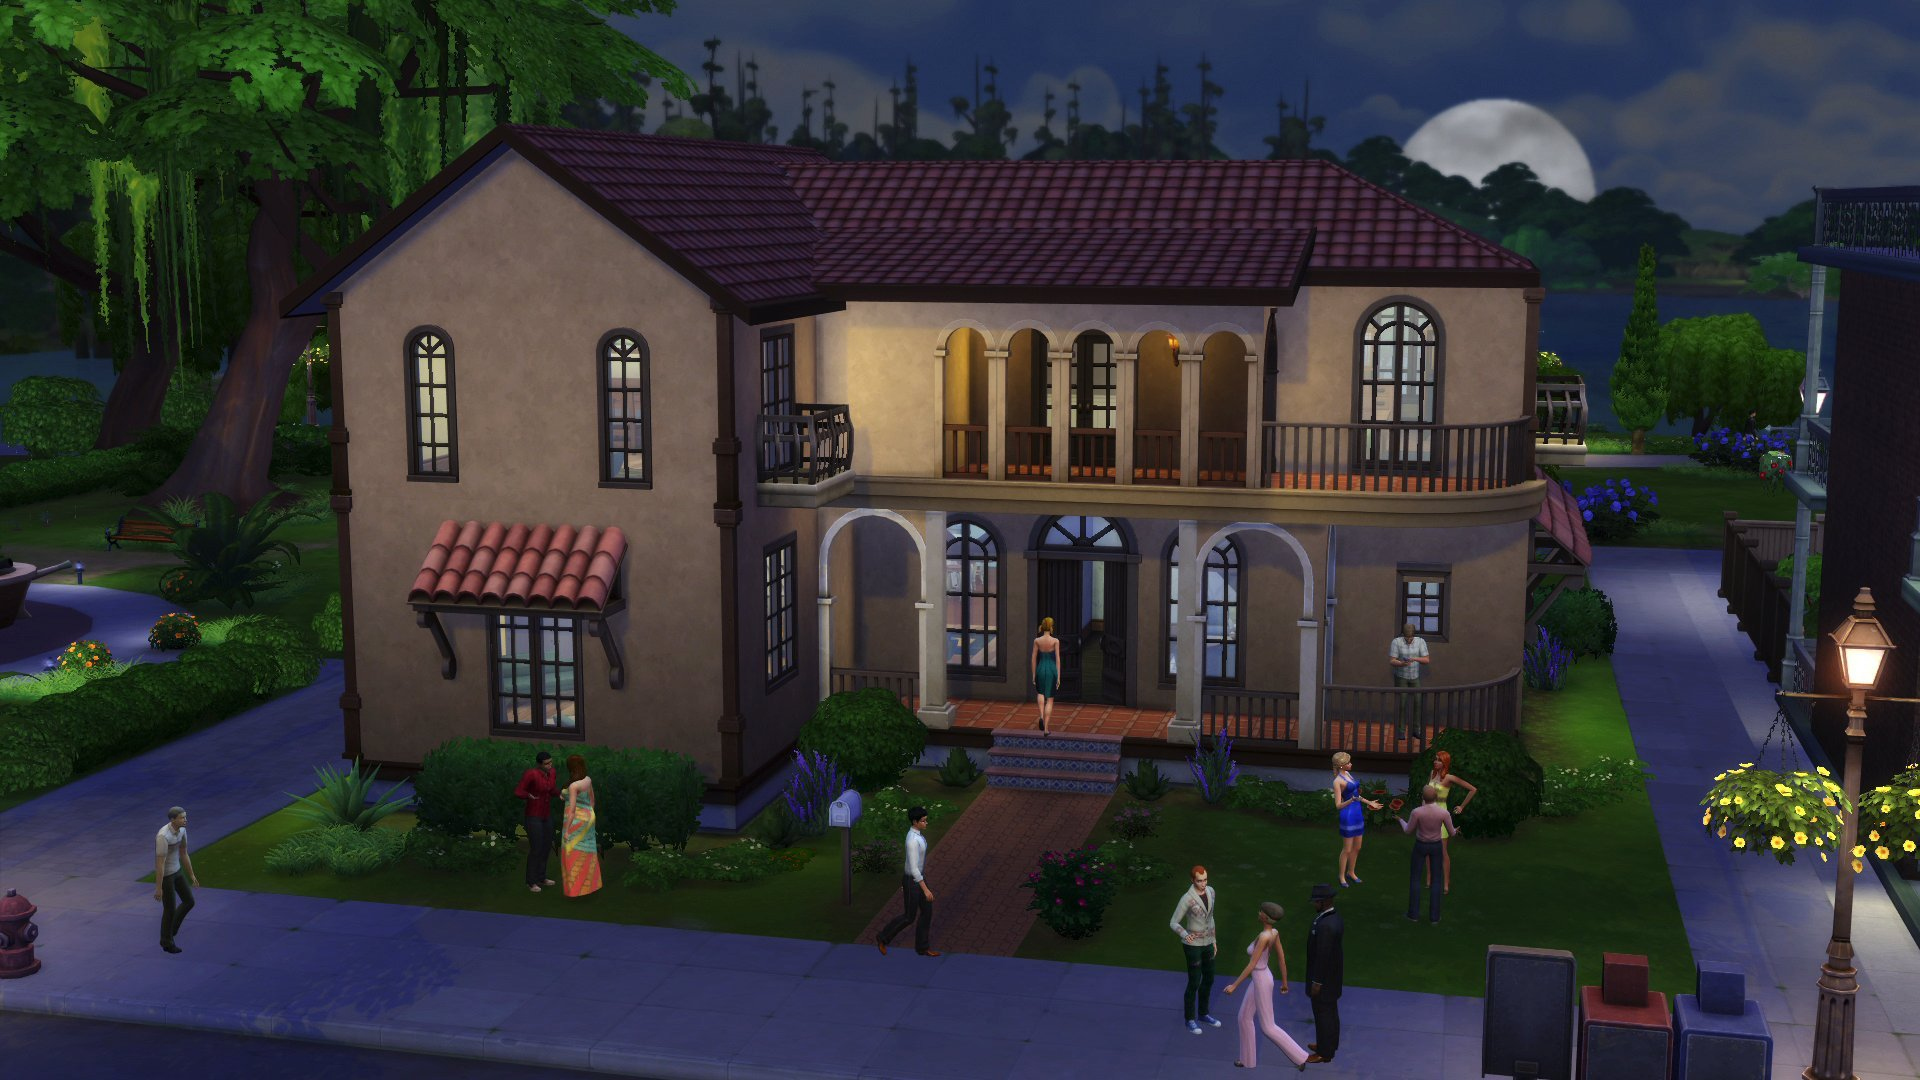 Drawn office sims Patio Perfect 4: [Online Sims